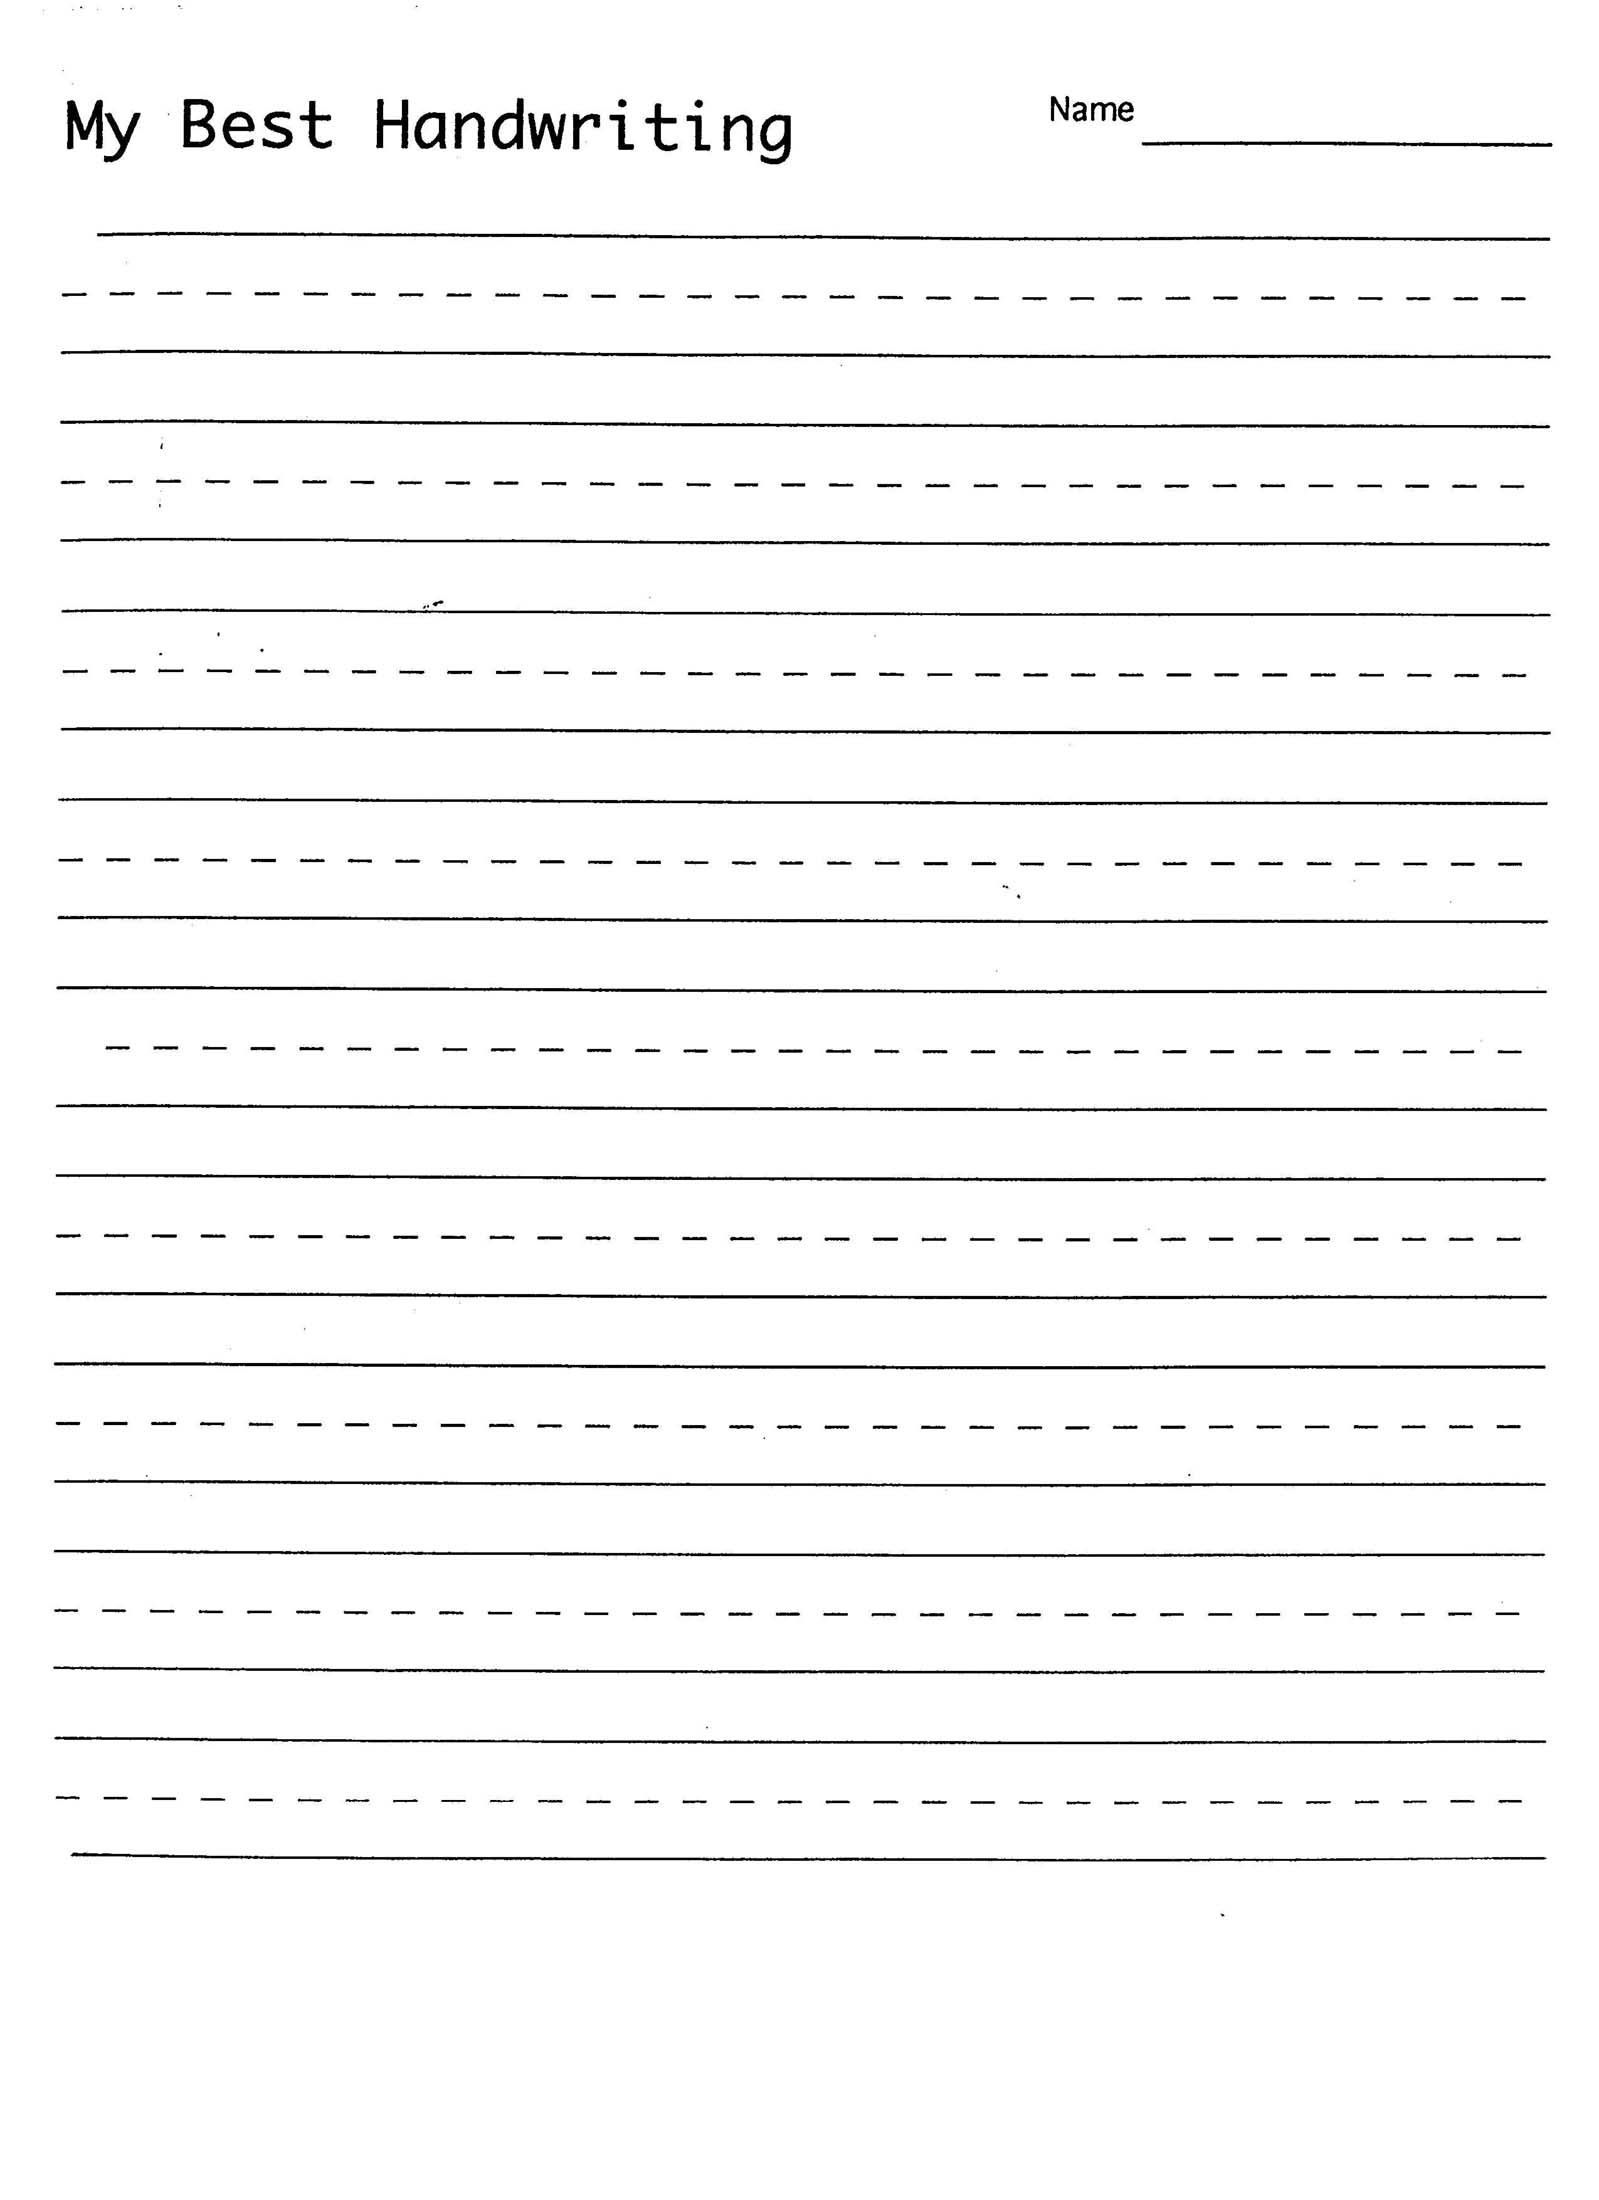 A To Z Teacher Stuff Tools Printable Handwriting Worksheet